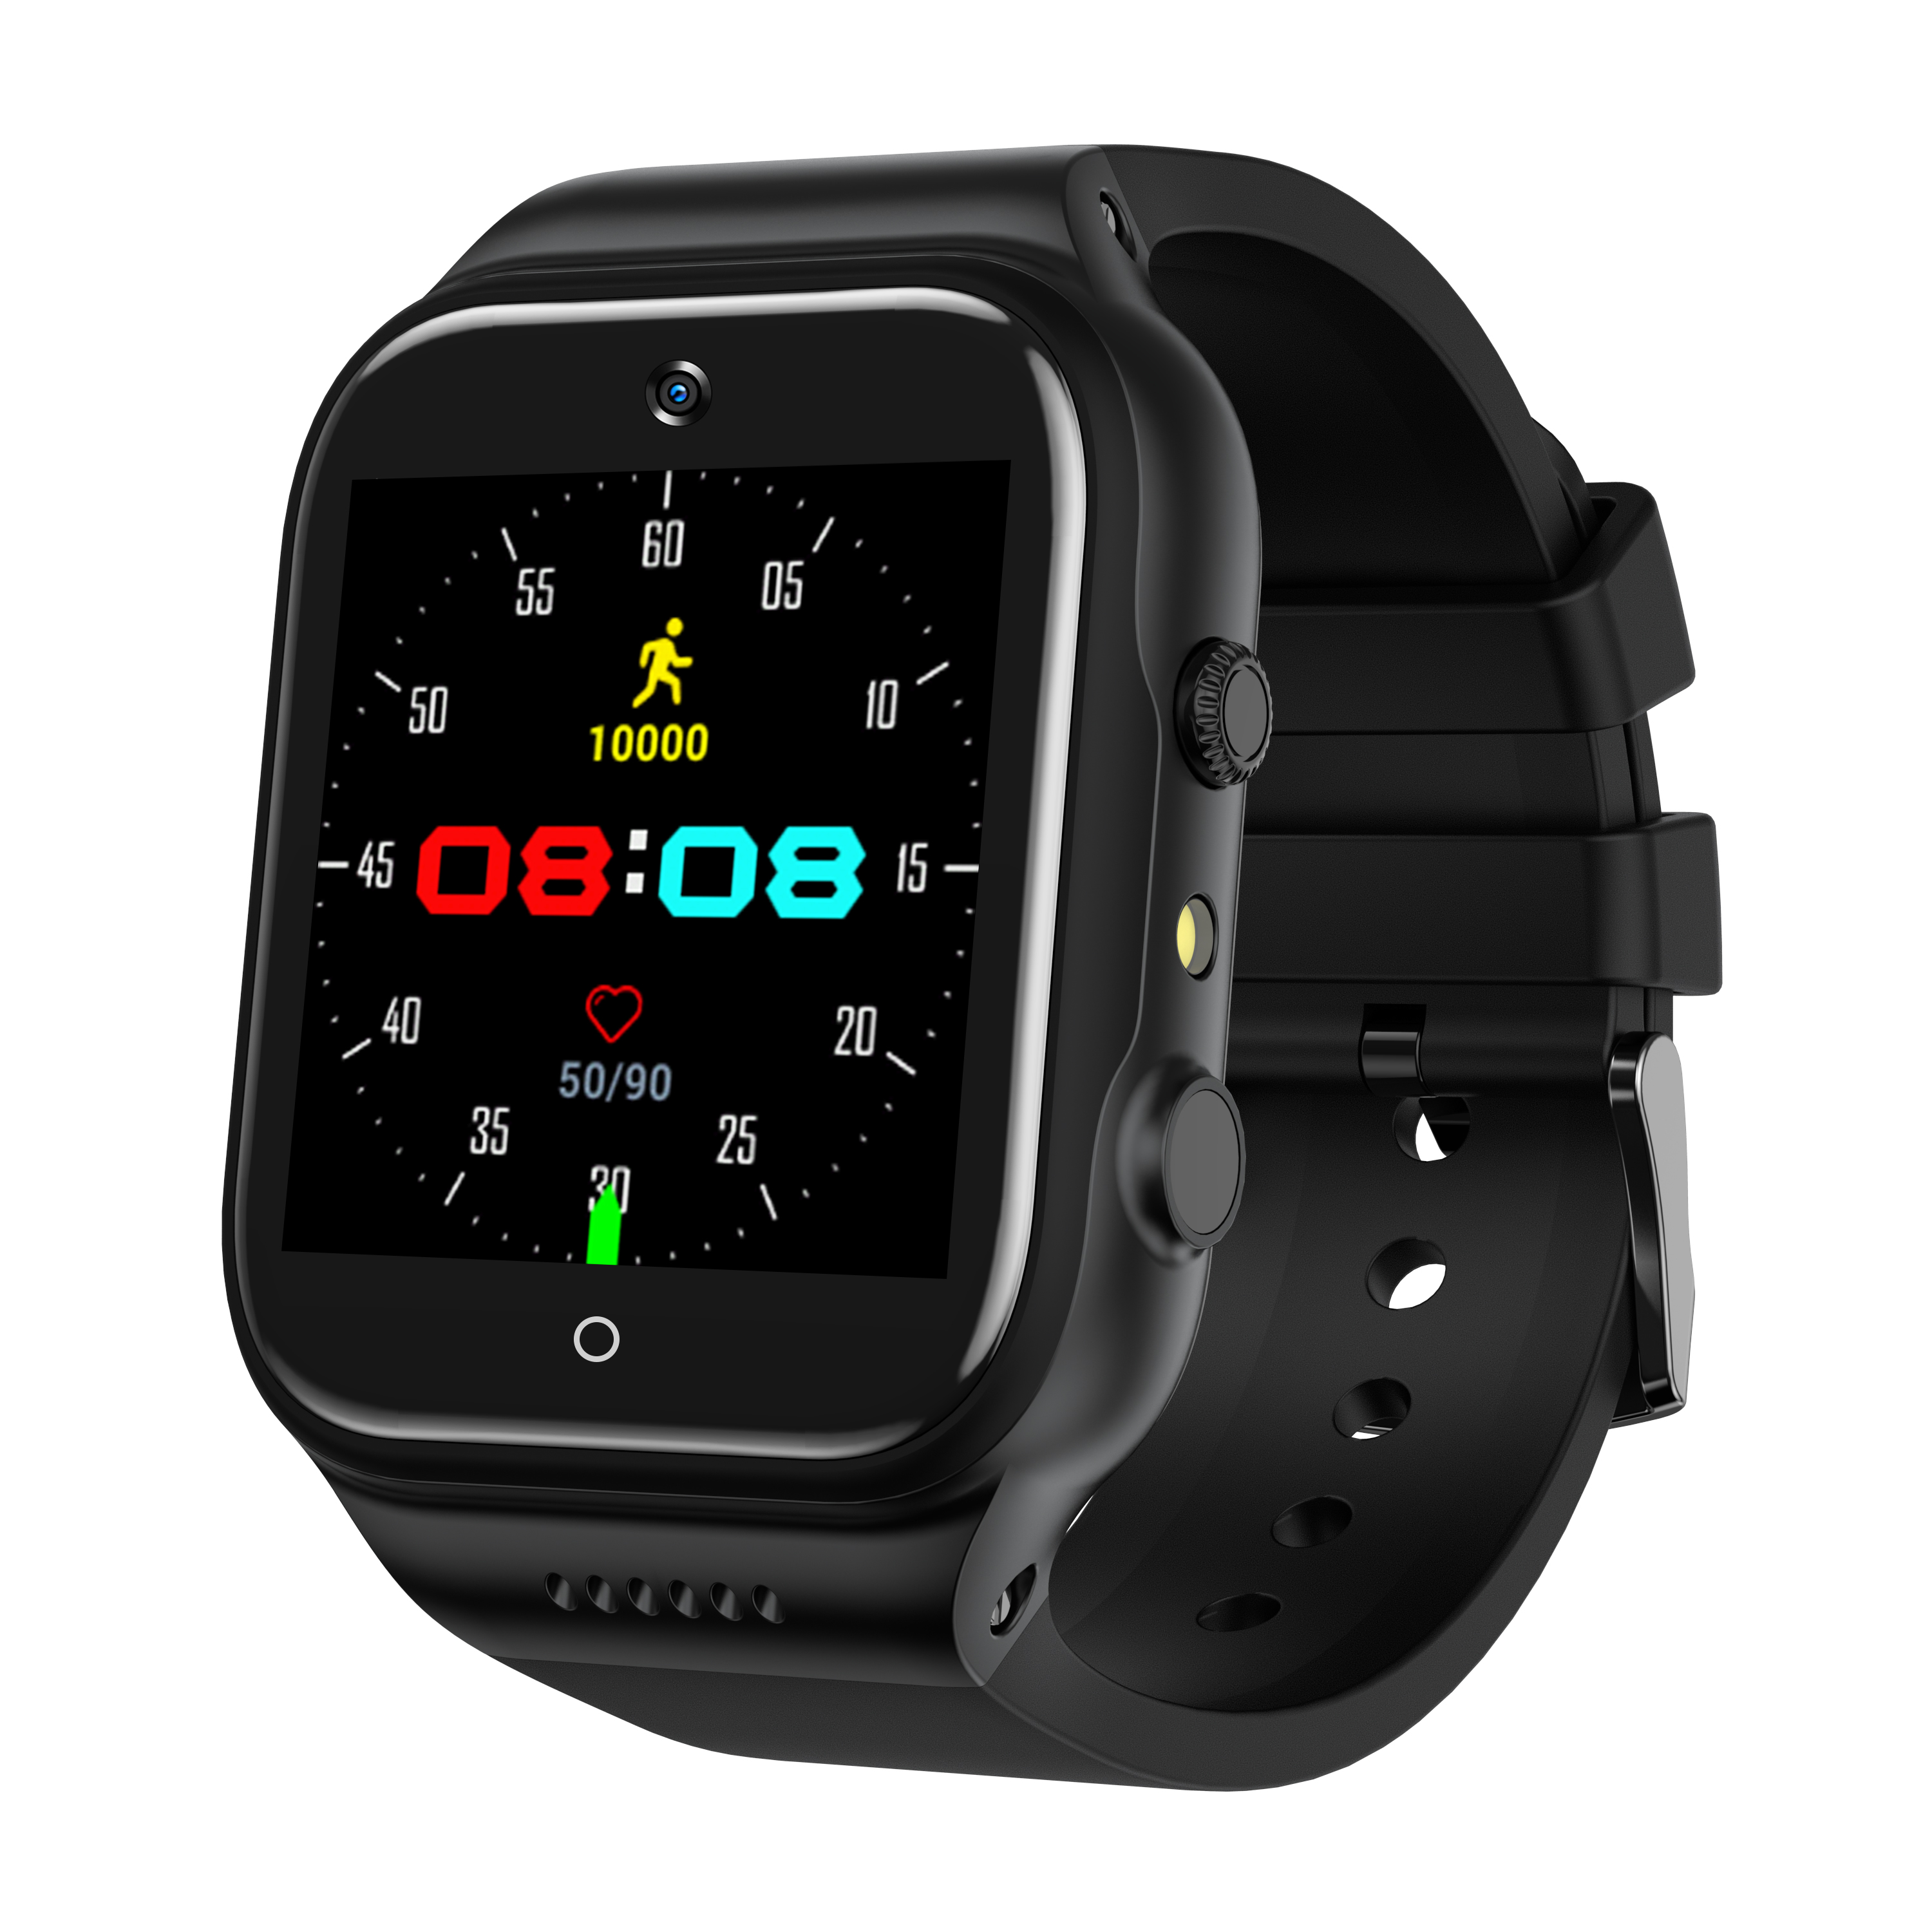 X89 Smart Watch 4G WIFI GPS with Camera Bluetooth 4.2 support whatsapp email Heart Tracker for men - ANKUX Tech Co., Ltd